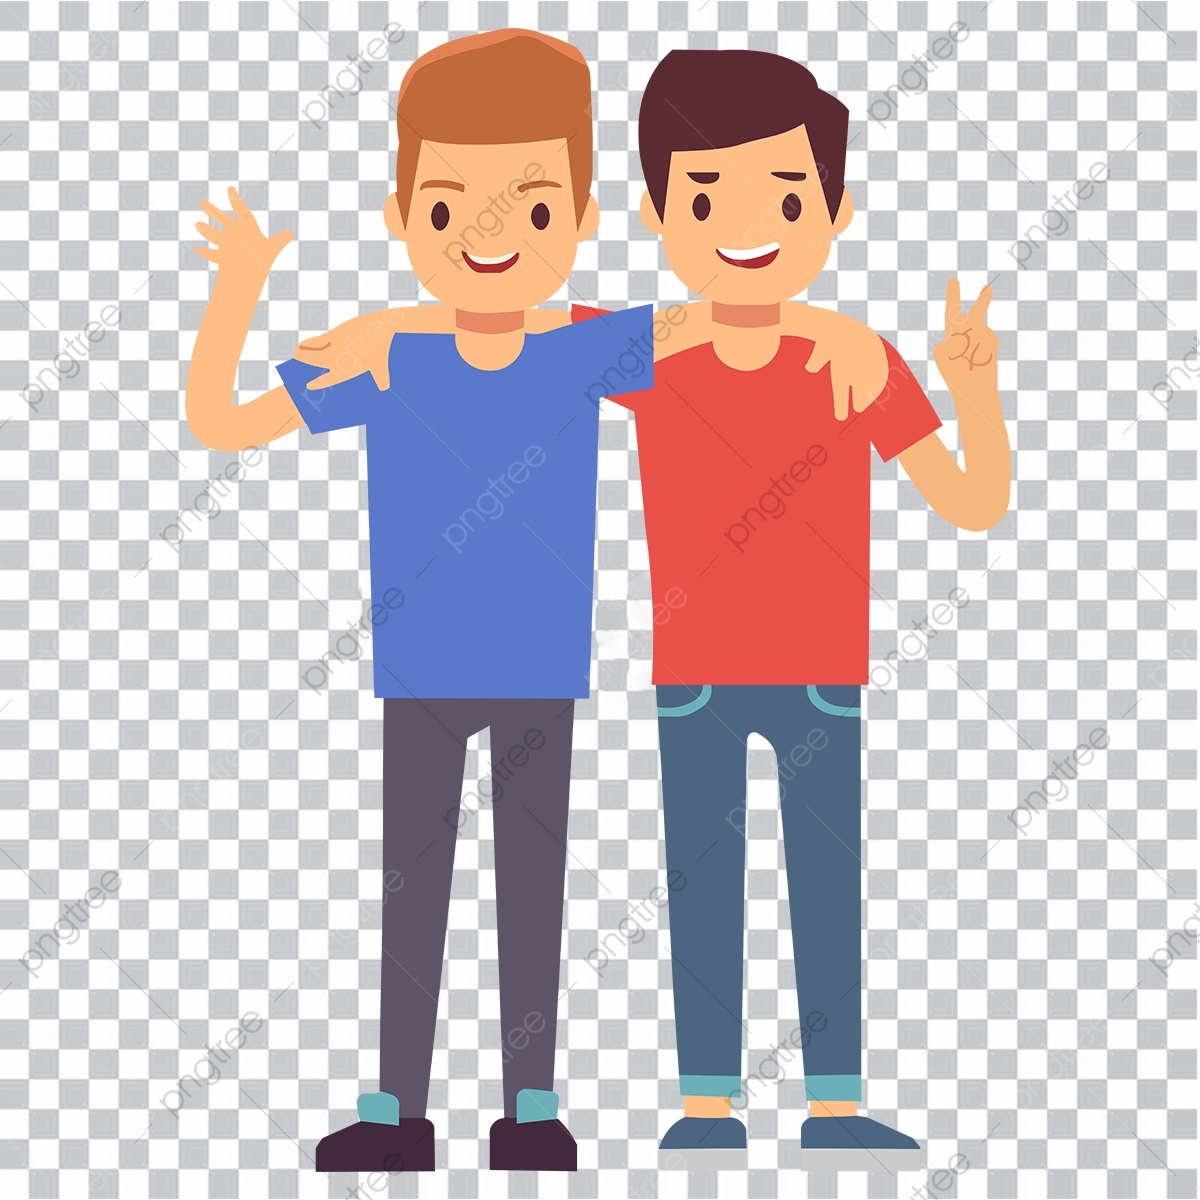 Cartoon Friends Png Images Vector And Psd Files Free Download On Pngtree